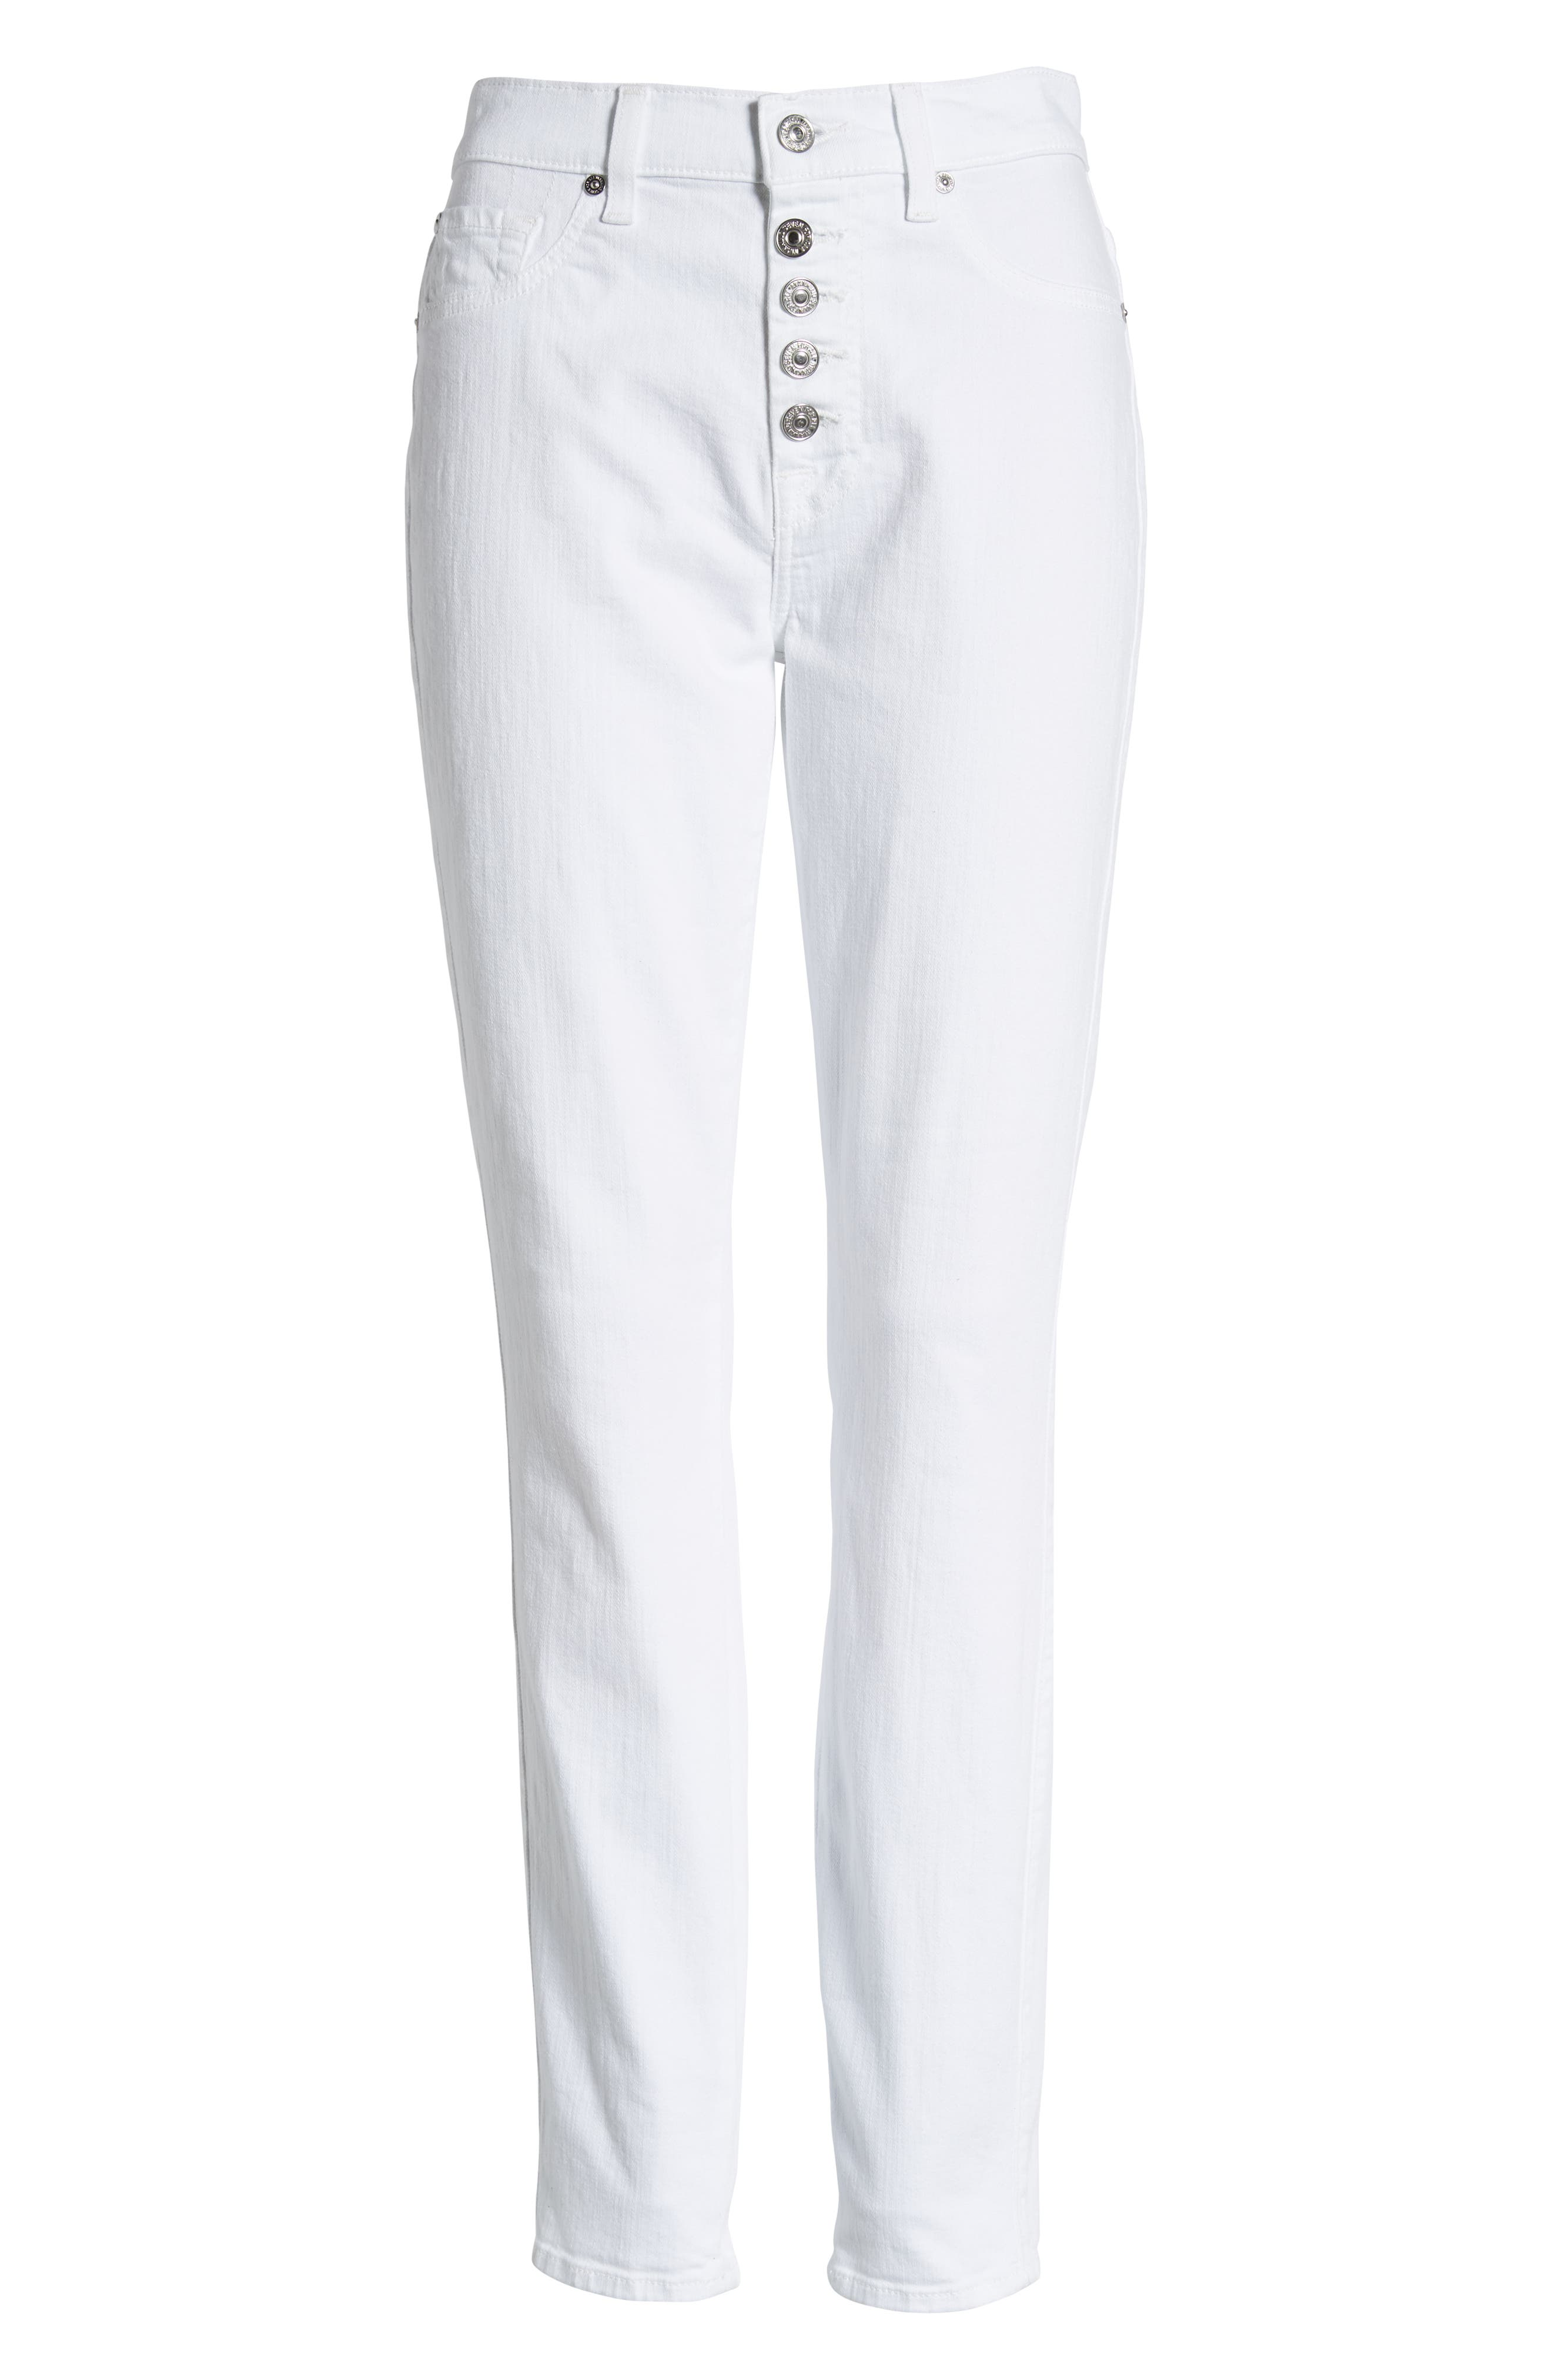 7 FOR ALL MANKIND<SUP>®</SUP>, Button Fly High Waist Ankle Skinny Jeans, Alternate thumbnail 7, color, WHITE RUNWAY DENIM